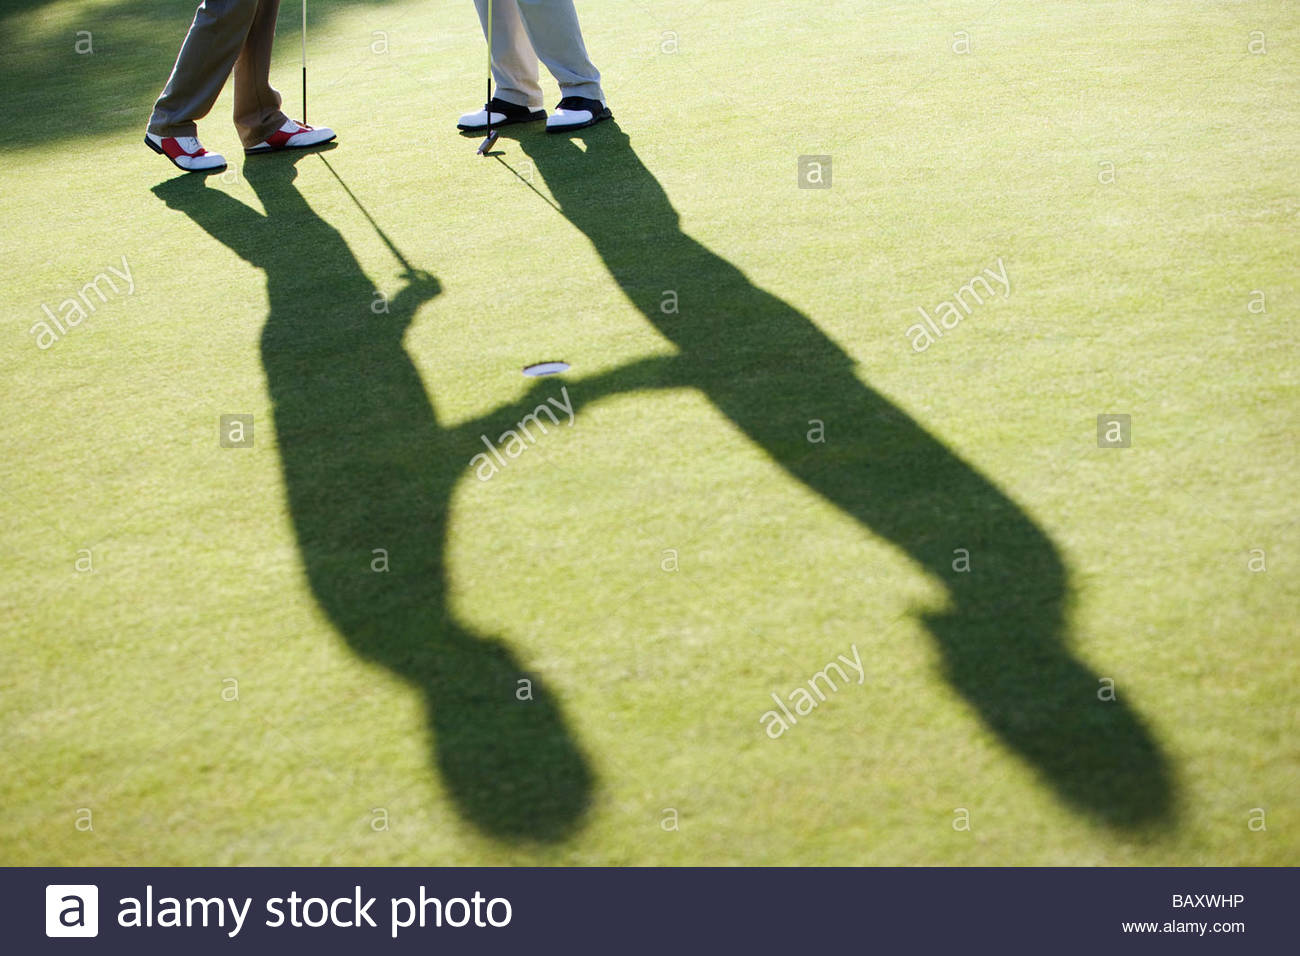 Men shaking hands on putting green - Stock Image